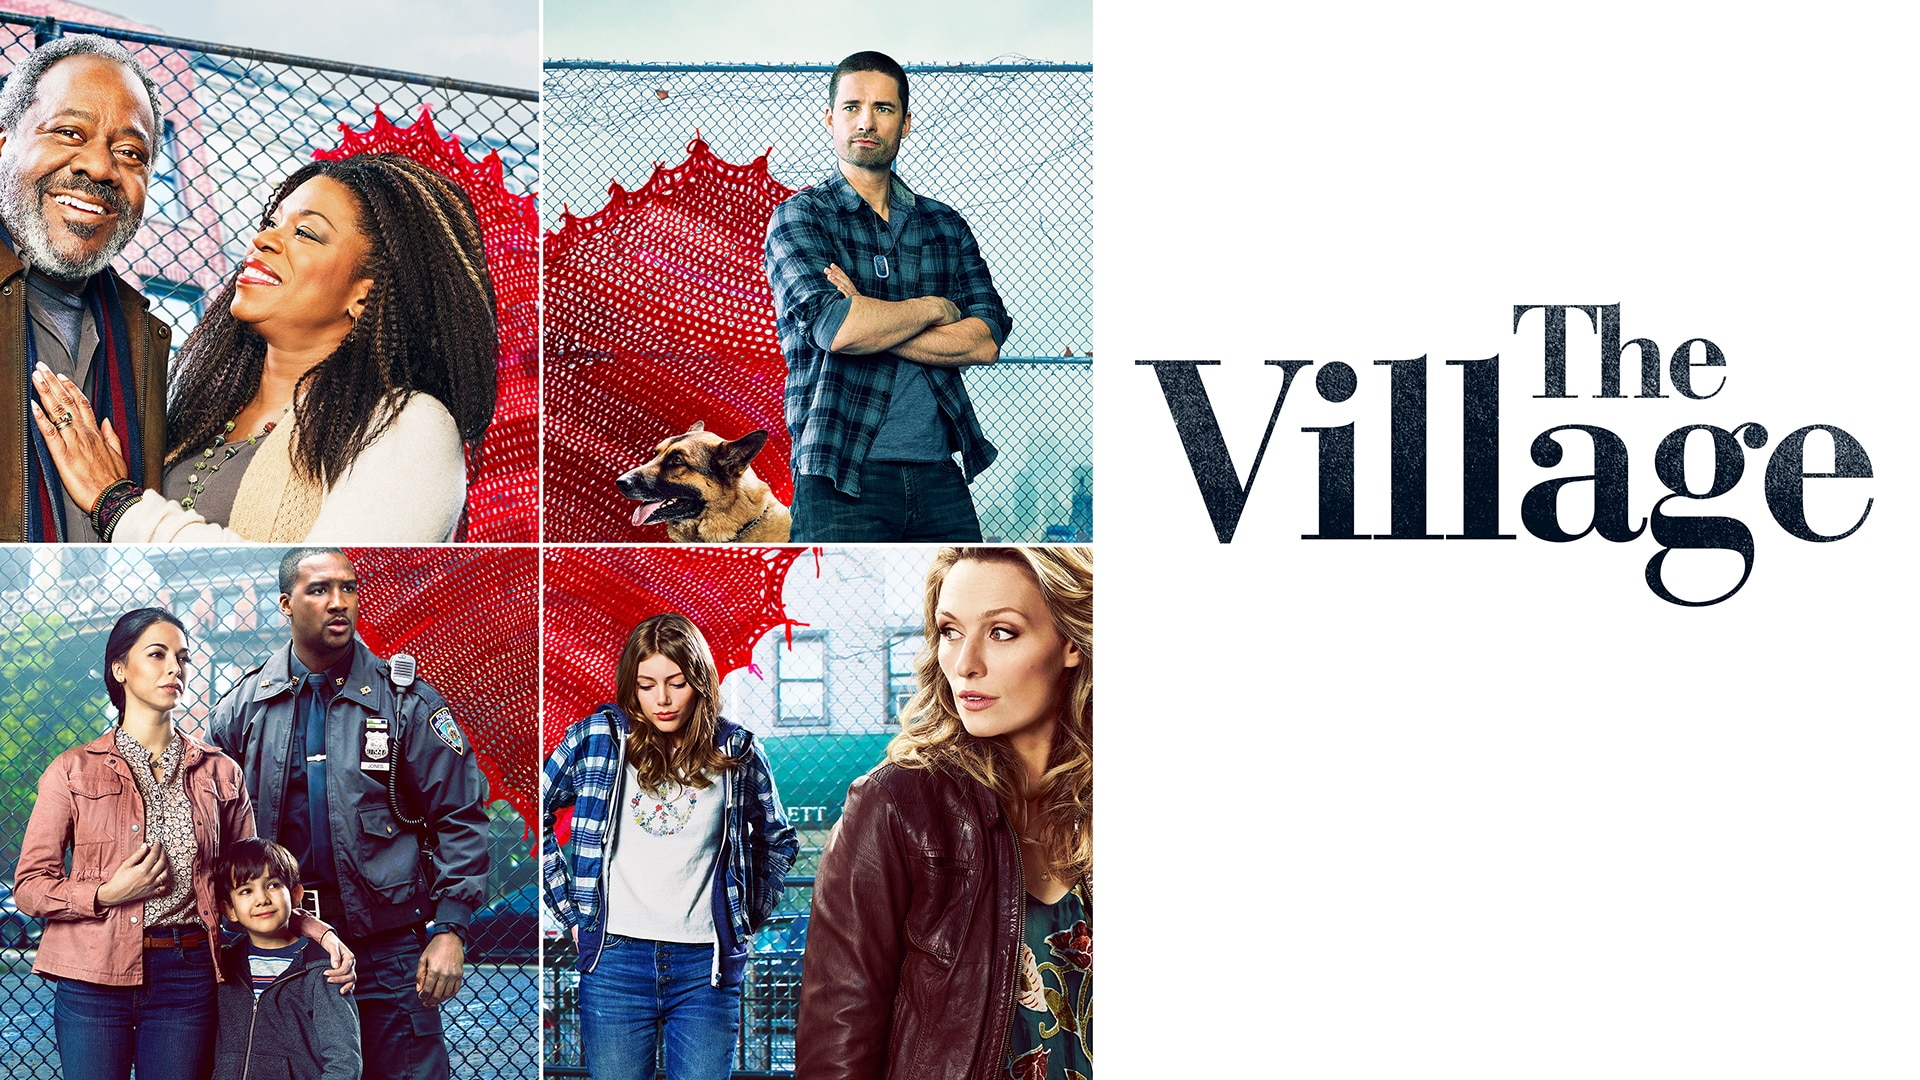 Gabe Napolitano The Village Character Nbc Com The village is an american drama television series created by mike daniels that premiered on nbc on march 19 and ended on may 21, 2019. gabe napolitano the village character